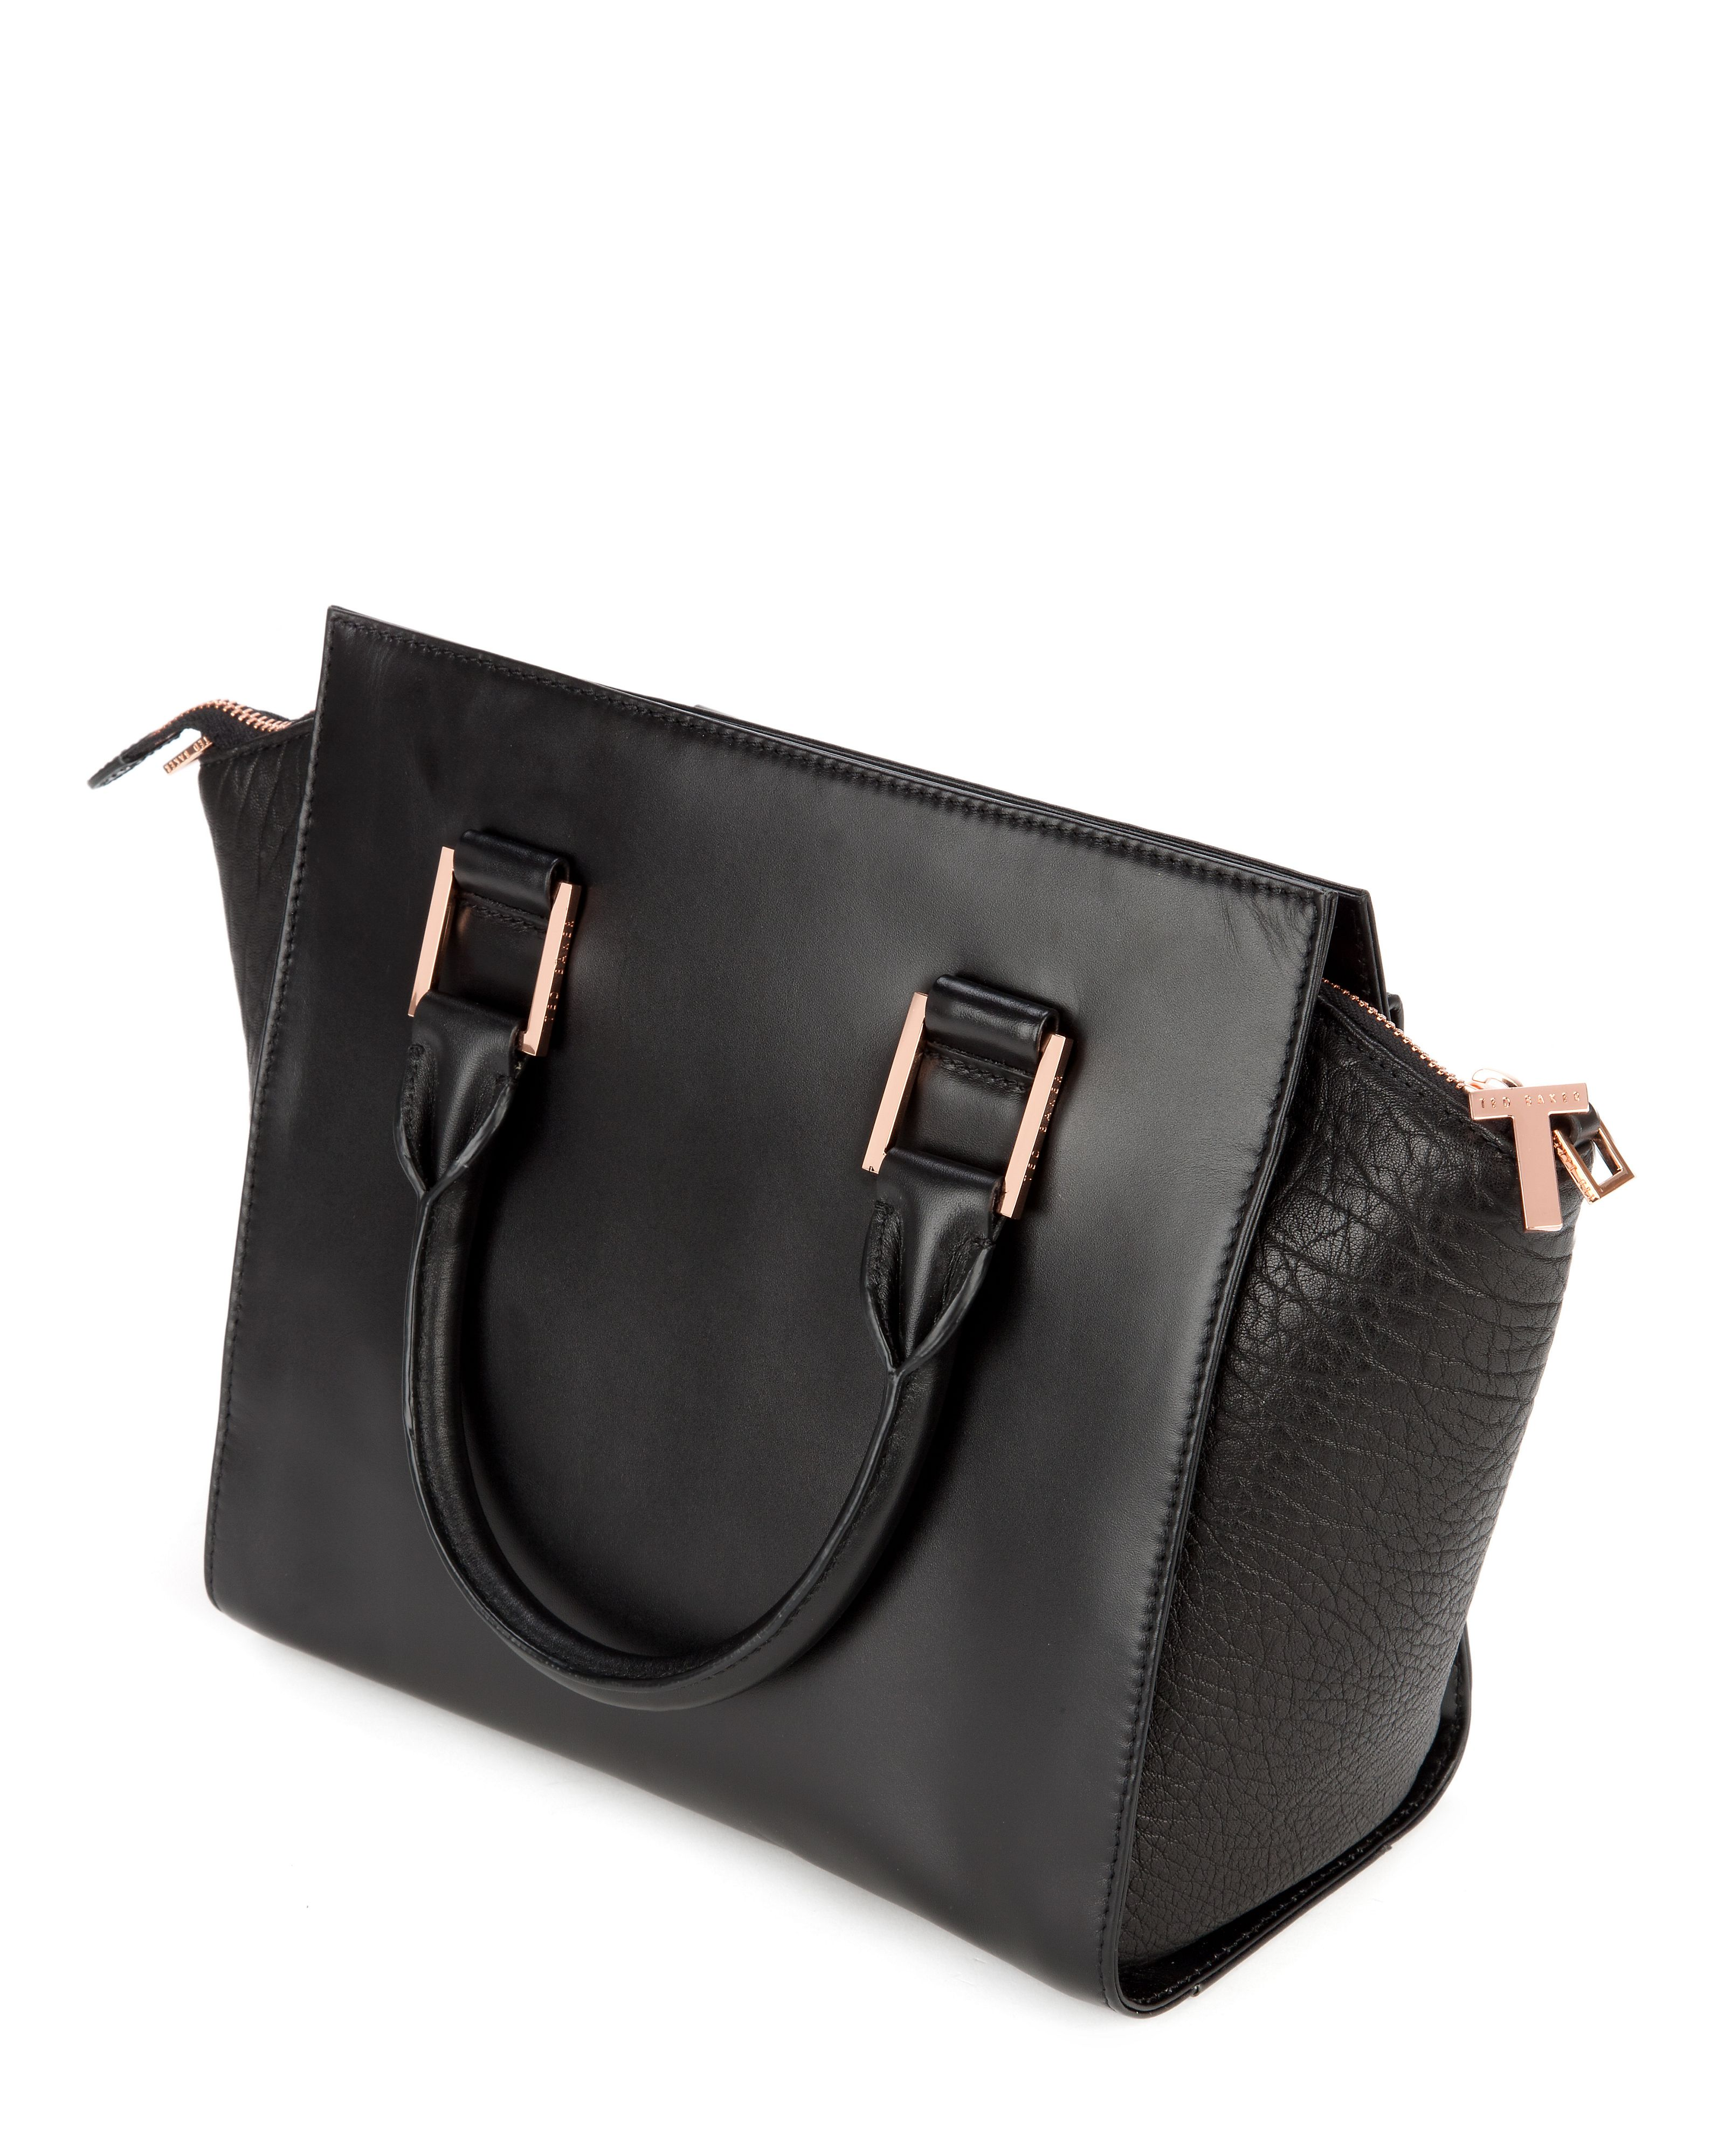 Layally t tote and clutch bag